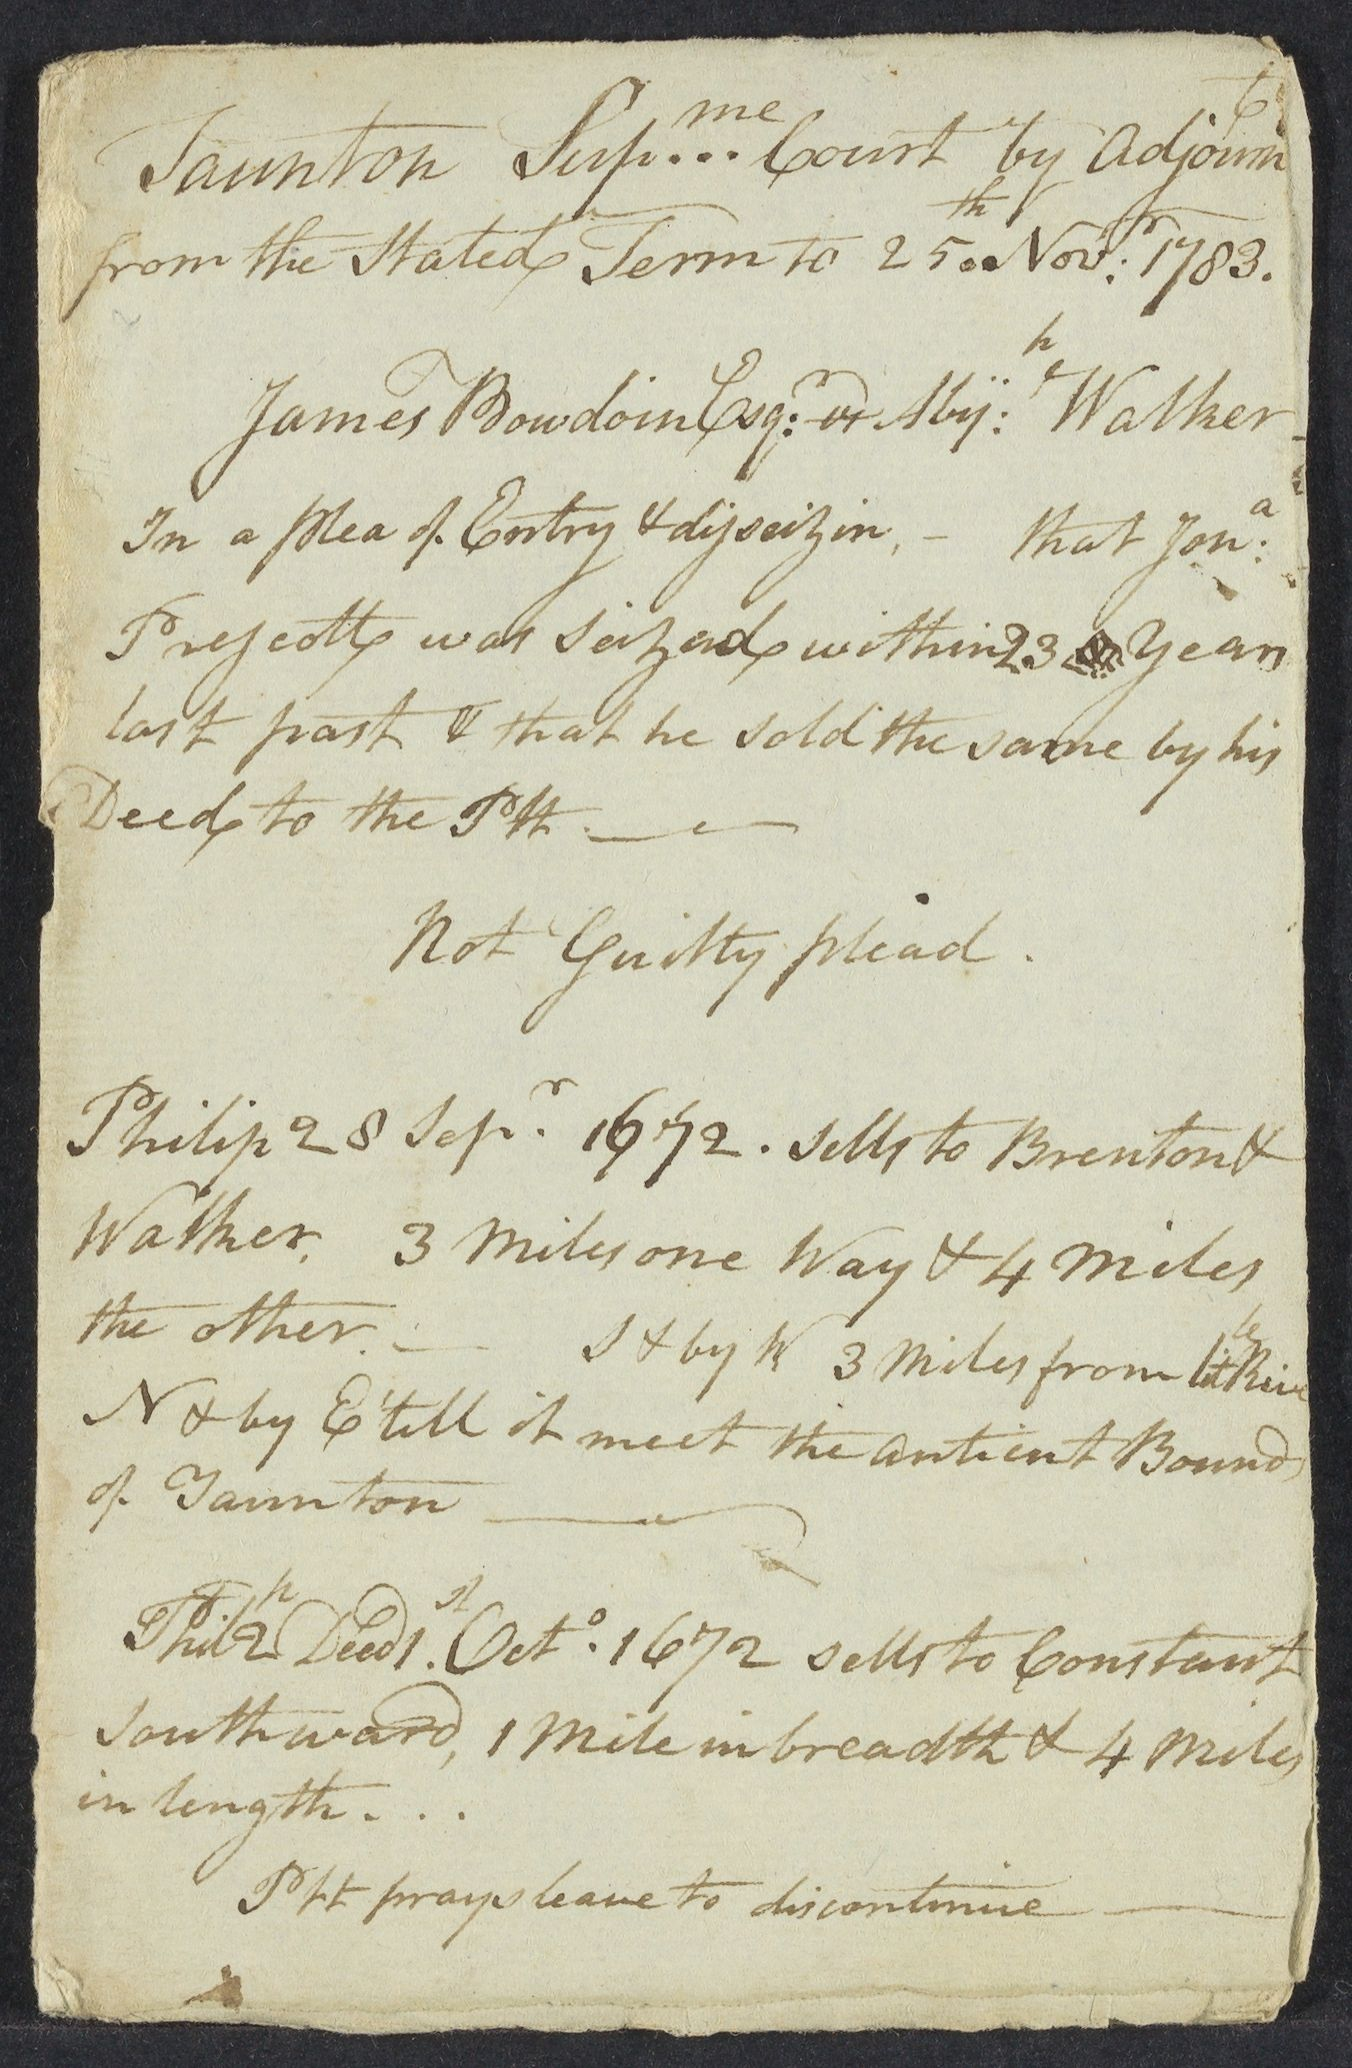 Notes on cases in Taunton, 1783